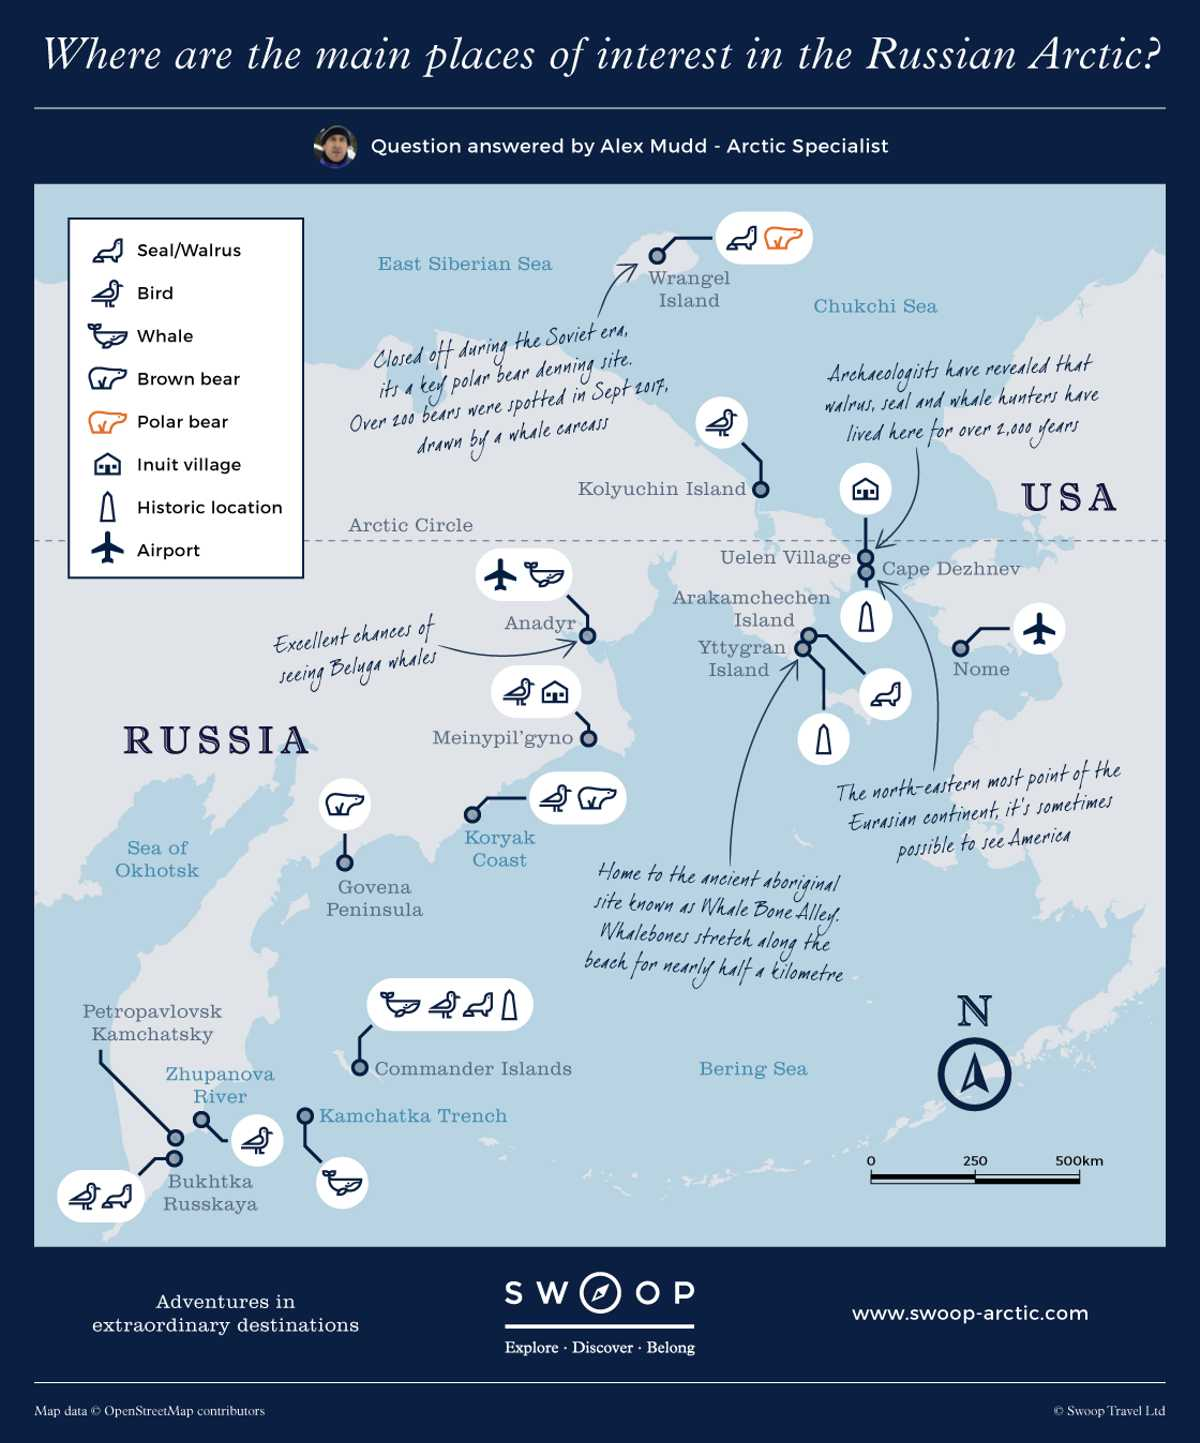 Places of interest in the Russian Arctic